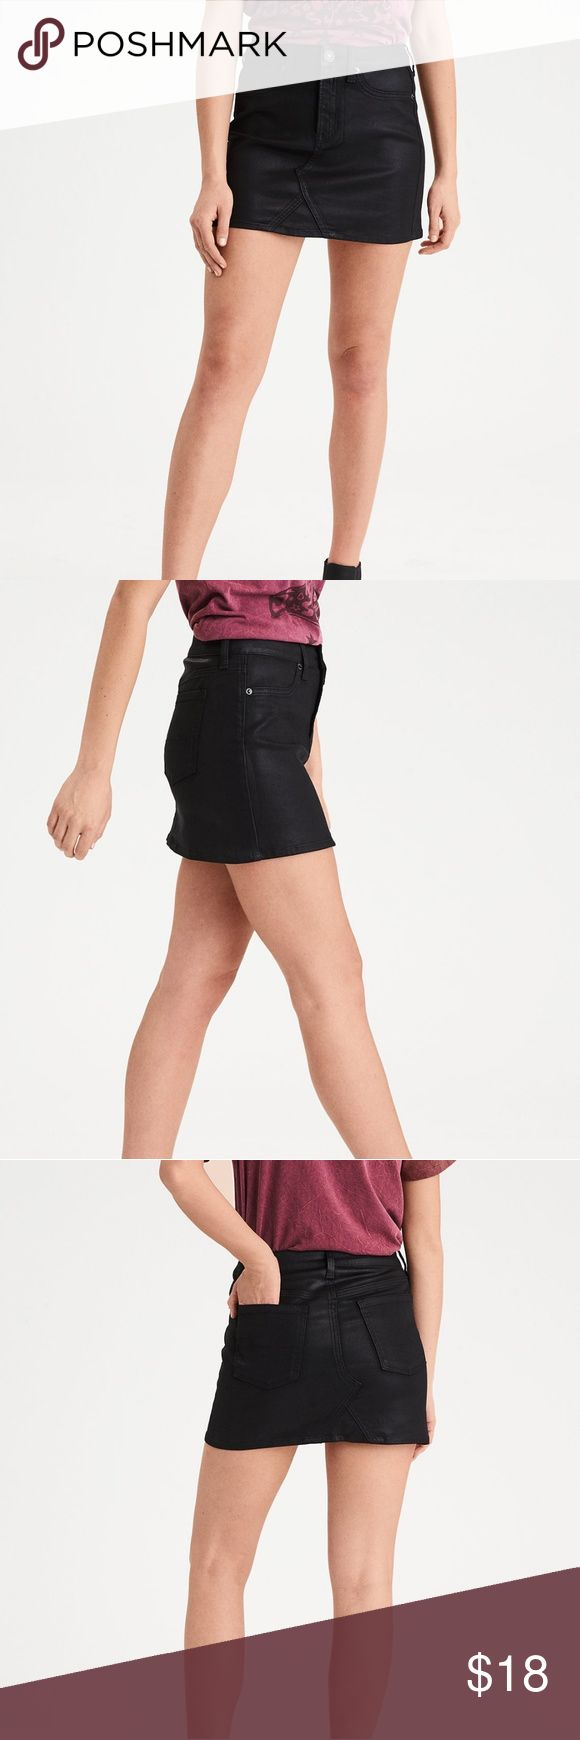 "AEO Coated Denim Faux Leather Mini Skirt Brand new with tags! Size 10. It does have a bit of stretch but the material is pretty thick. It is coated to make it look like leather.  🌸Measurements (laying flat): Waist-17"" Hips-20"" Length-15.5"" American Eagle Outfitters Skirts Mini"